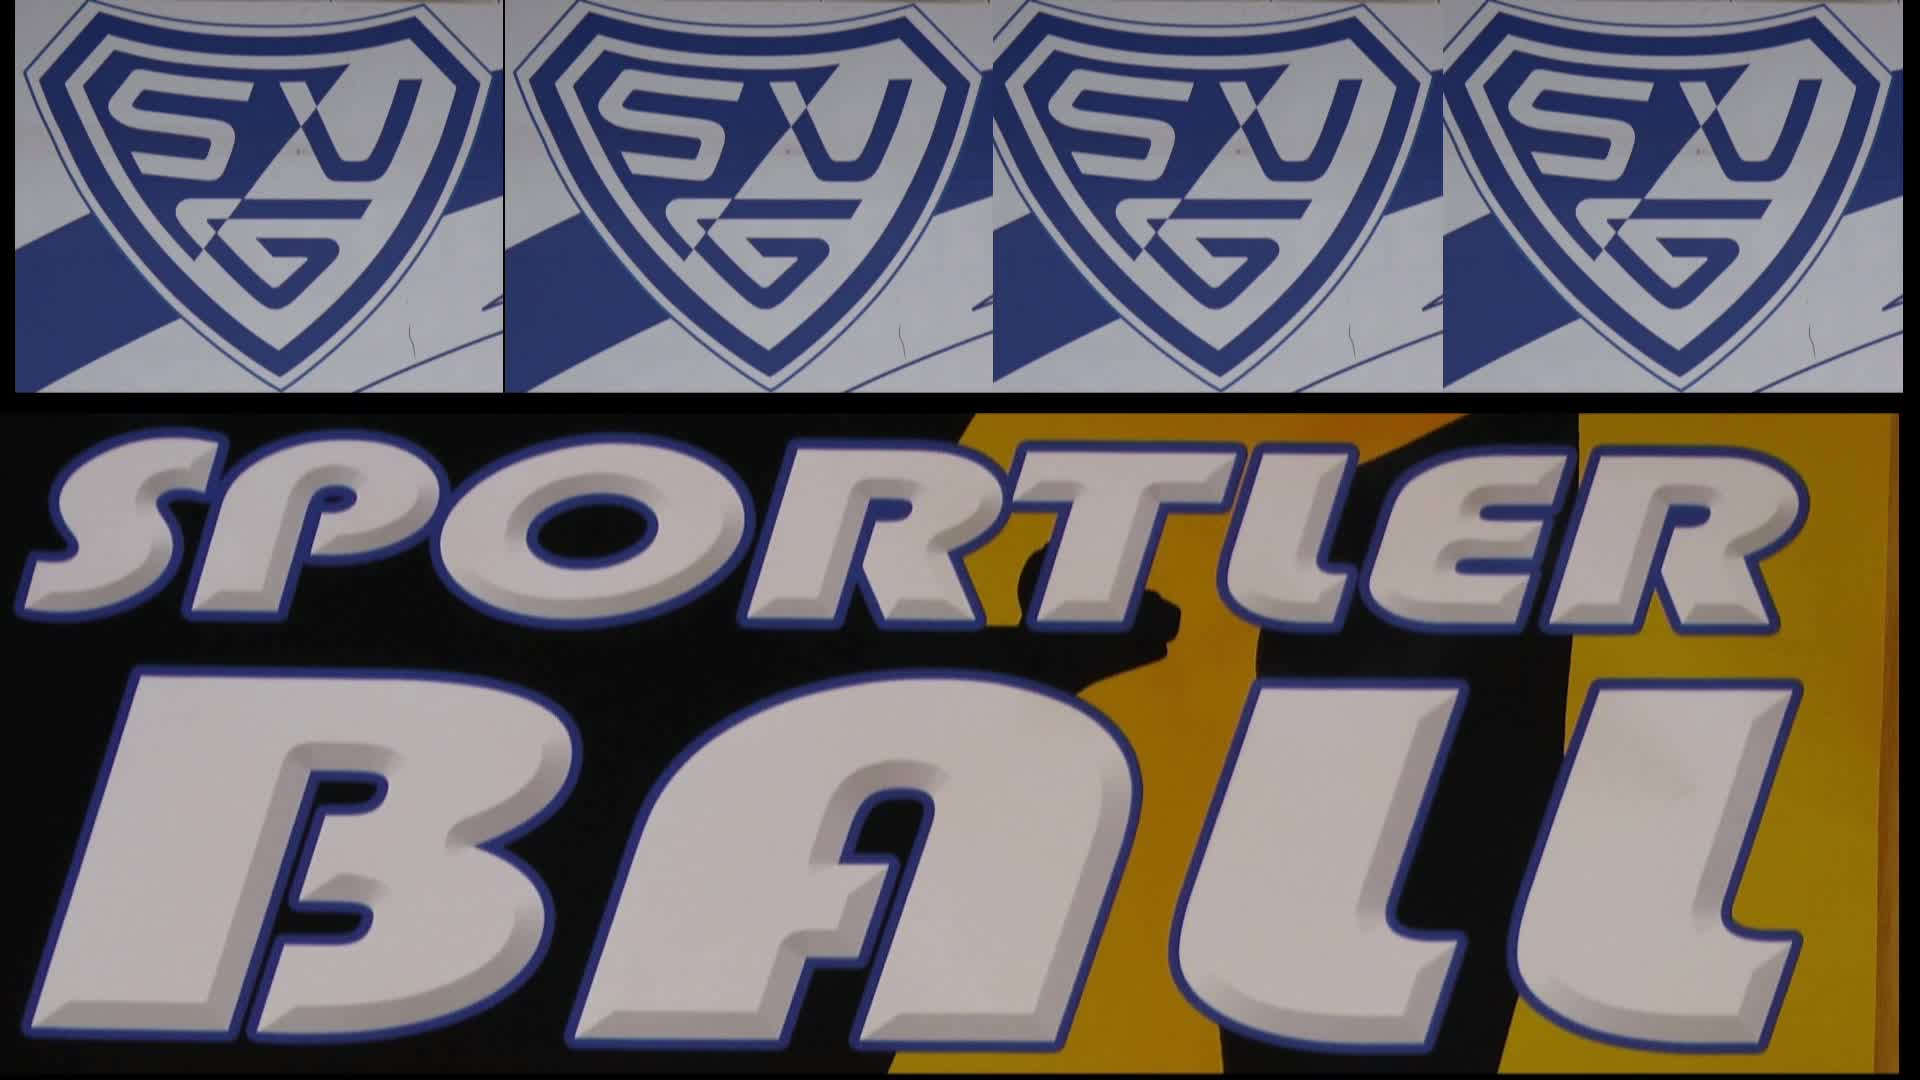 Sportlerball des SVG